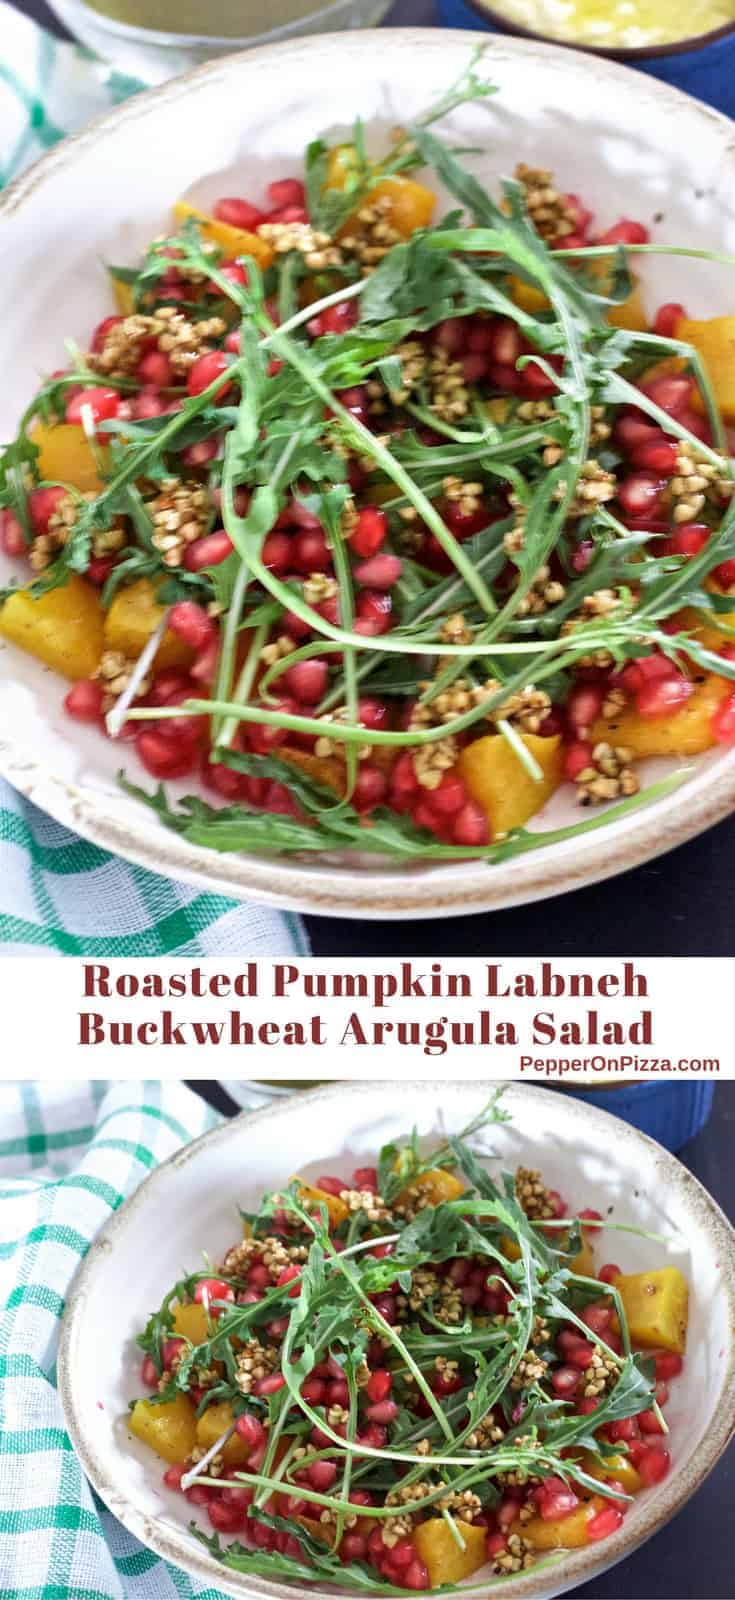 Roasted yellow pumpkin in a Roasted Pumpkin Pomegranate Salad with Argula leaves and pomegranates strewn on top. https://www.PepperOnPizza.com